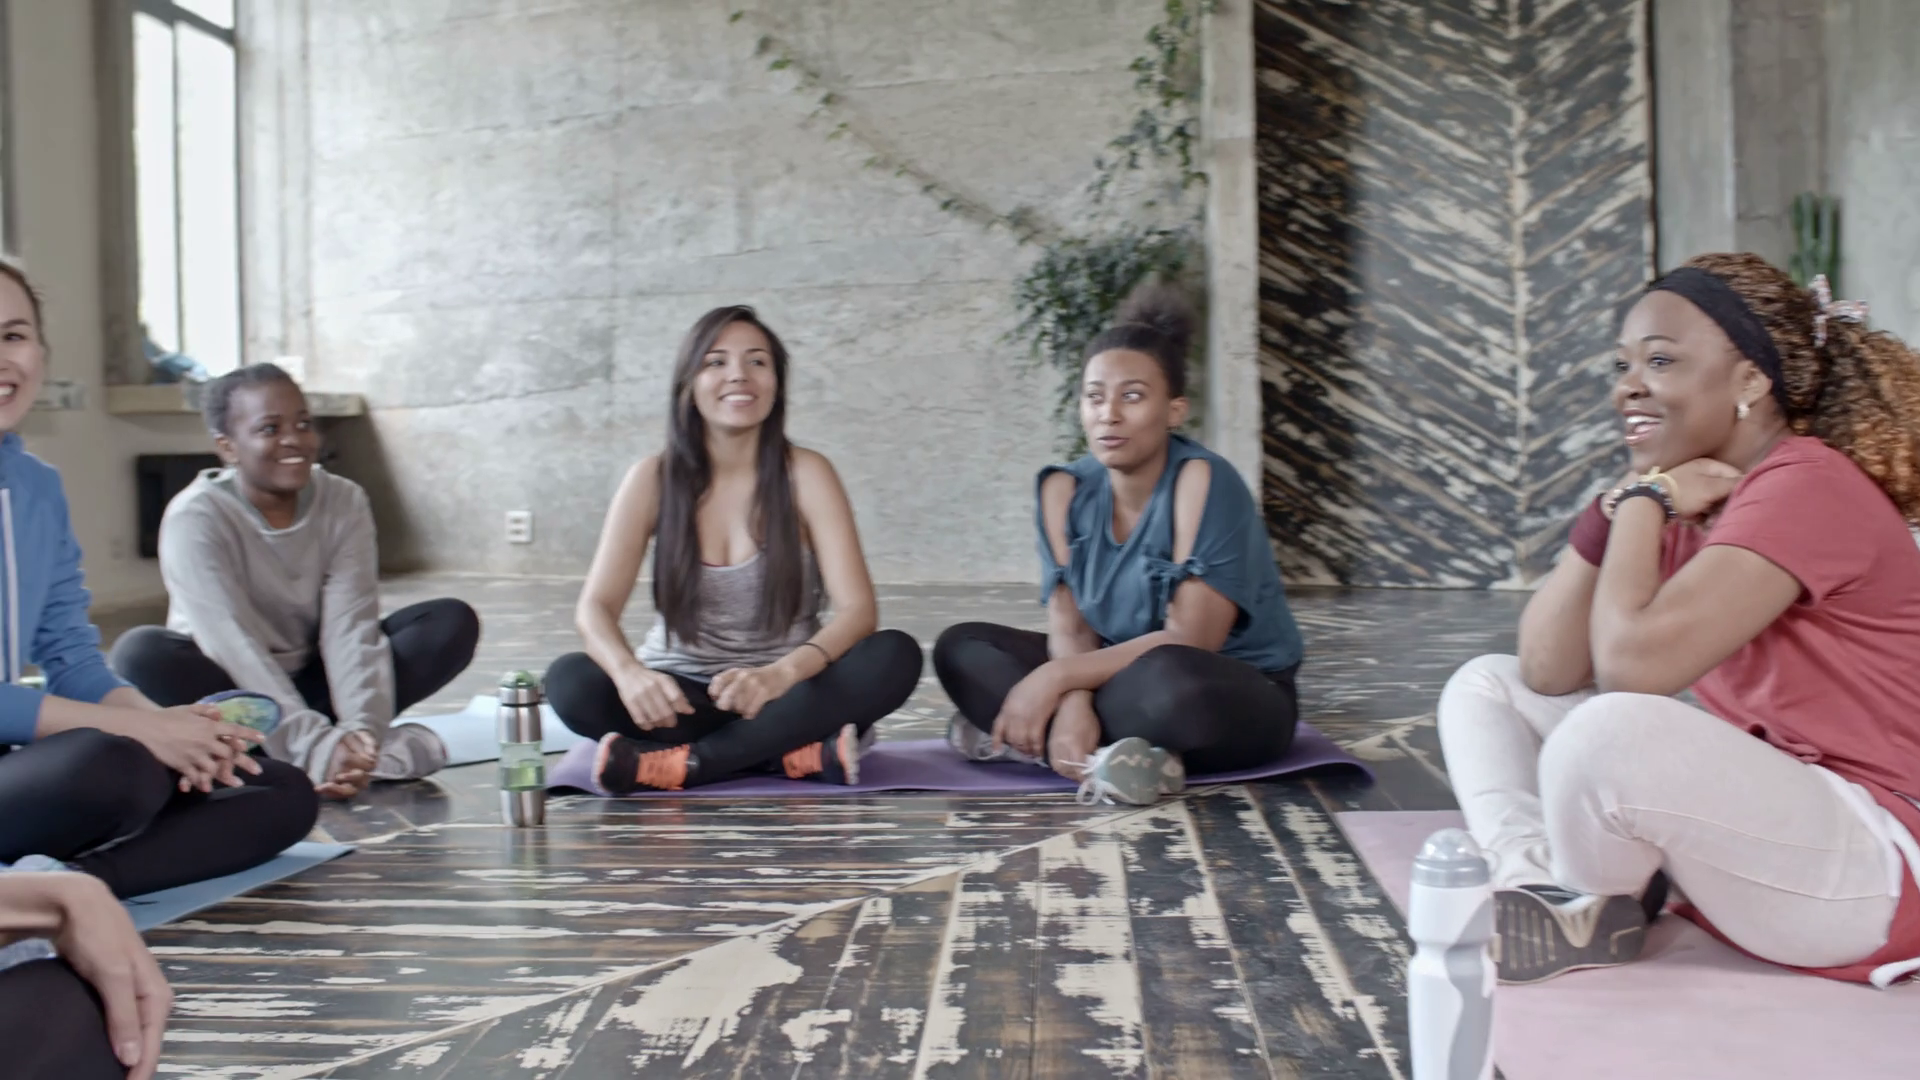 videoblocks-pan-of-curly-young-yoga-instructor-and-multiethnic-group-of-women-sitting-on-mats-in-circle-and-chatting-in-studio-before-class_r8beiu6wz_thumbnail-full01.png